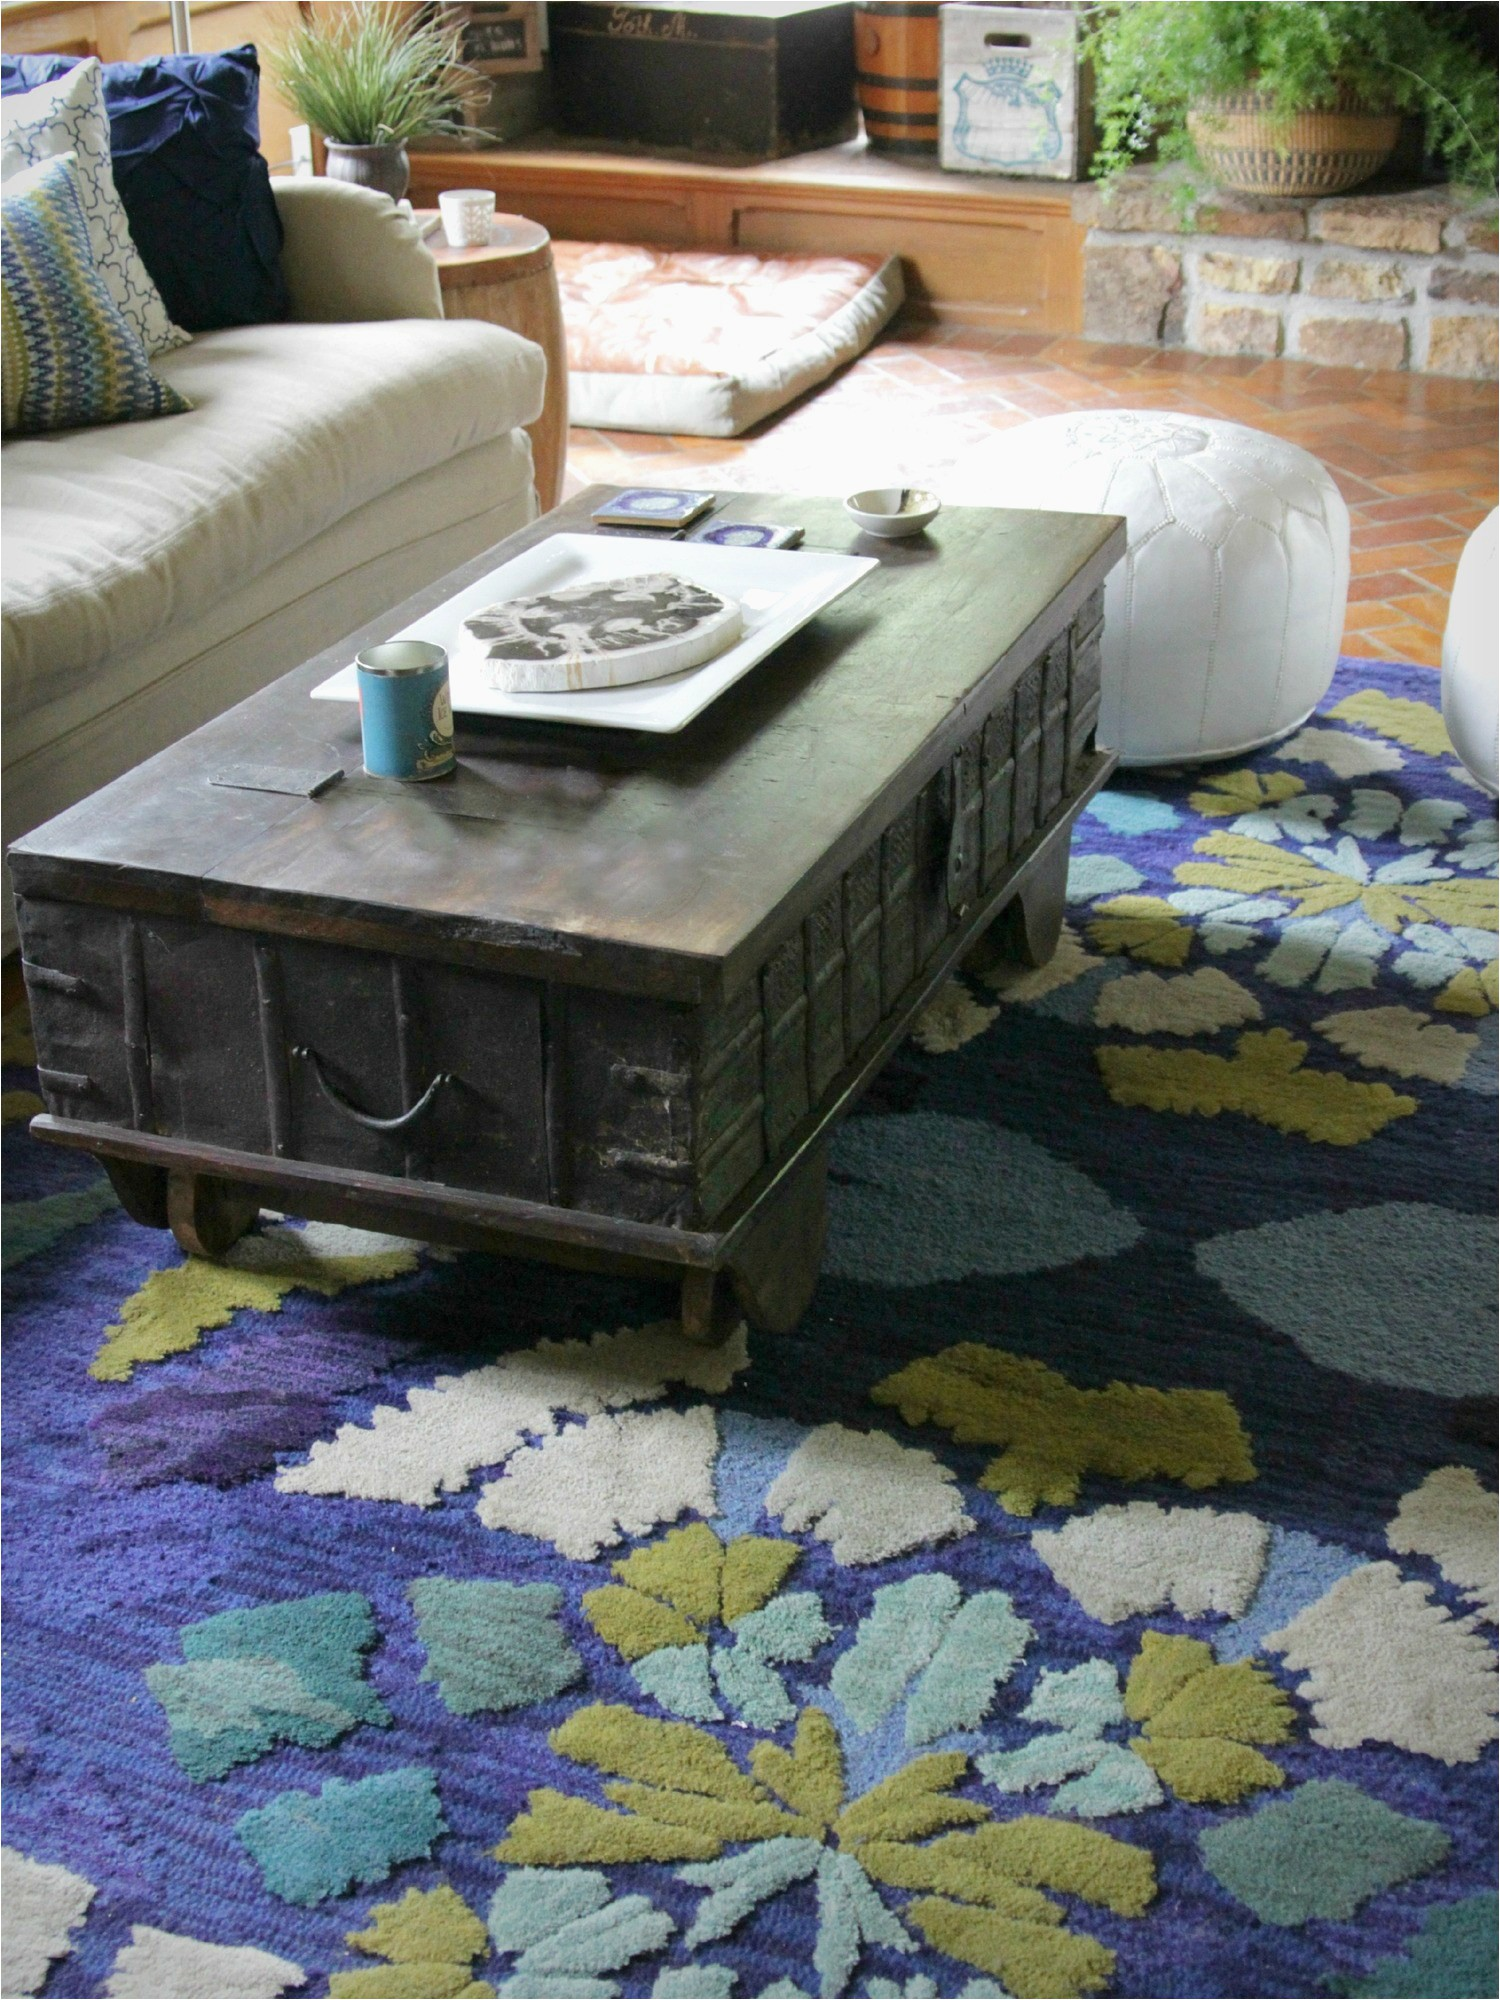 Area Rugs and Matching Pillows 5 Reasons You Re Not Finding the Perfect Rug Decor Fix